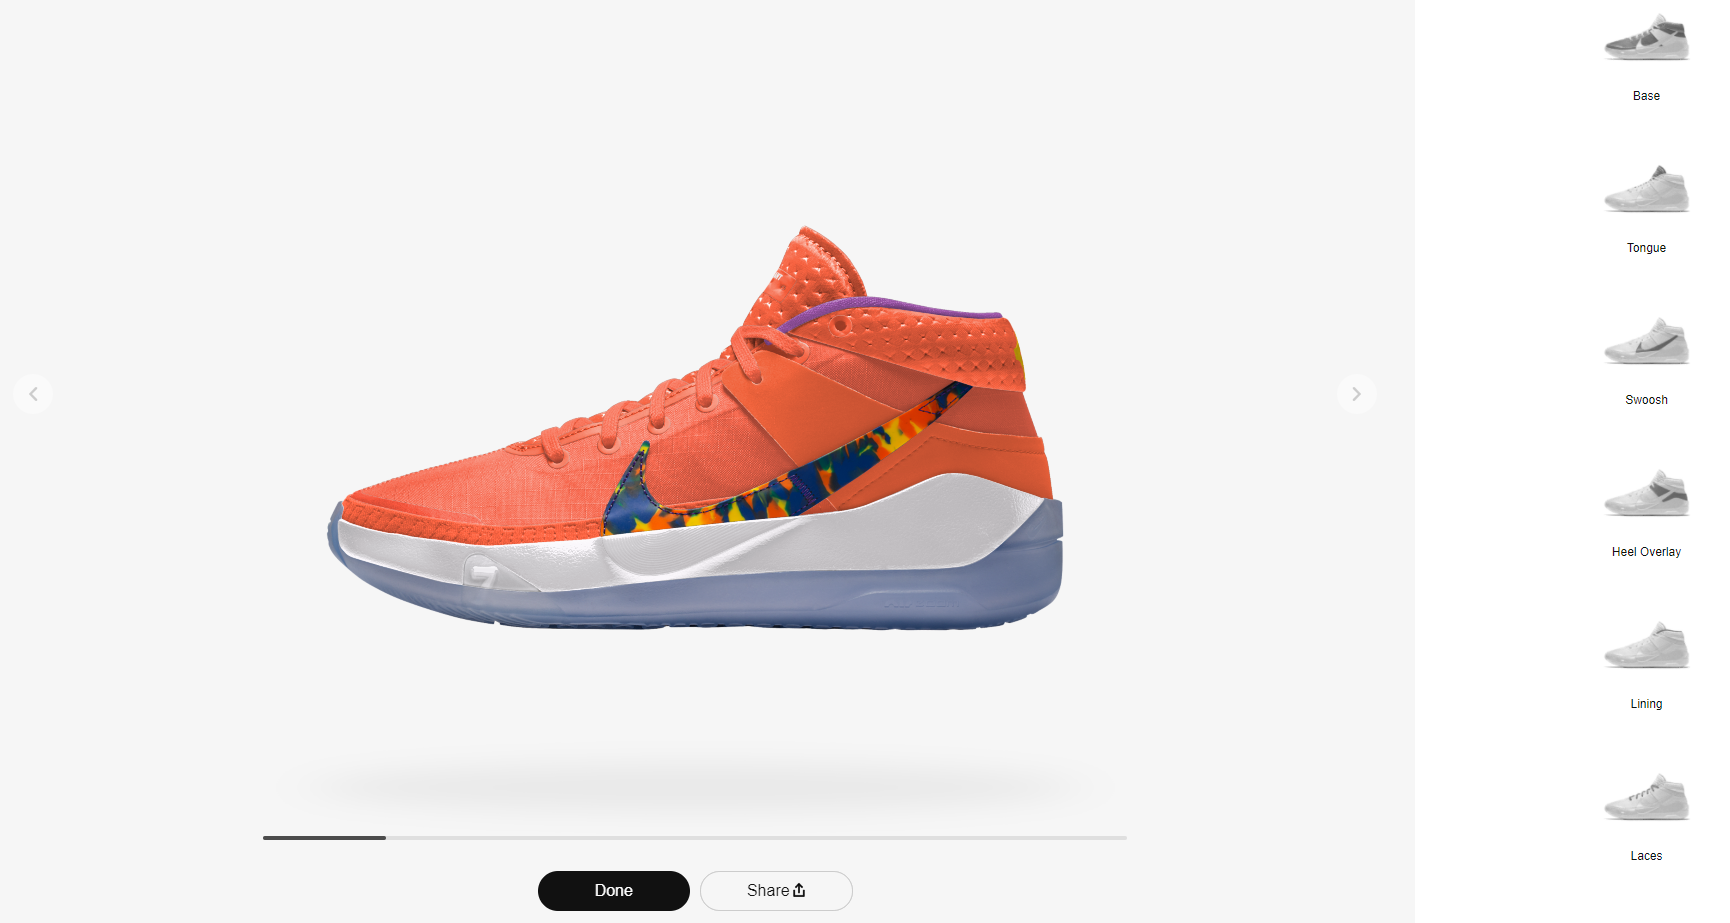 How To Customize YOUR OWN Basketball Shoes: Step 3